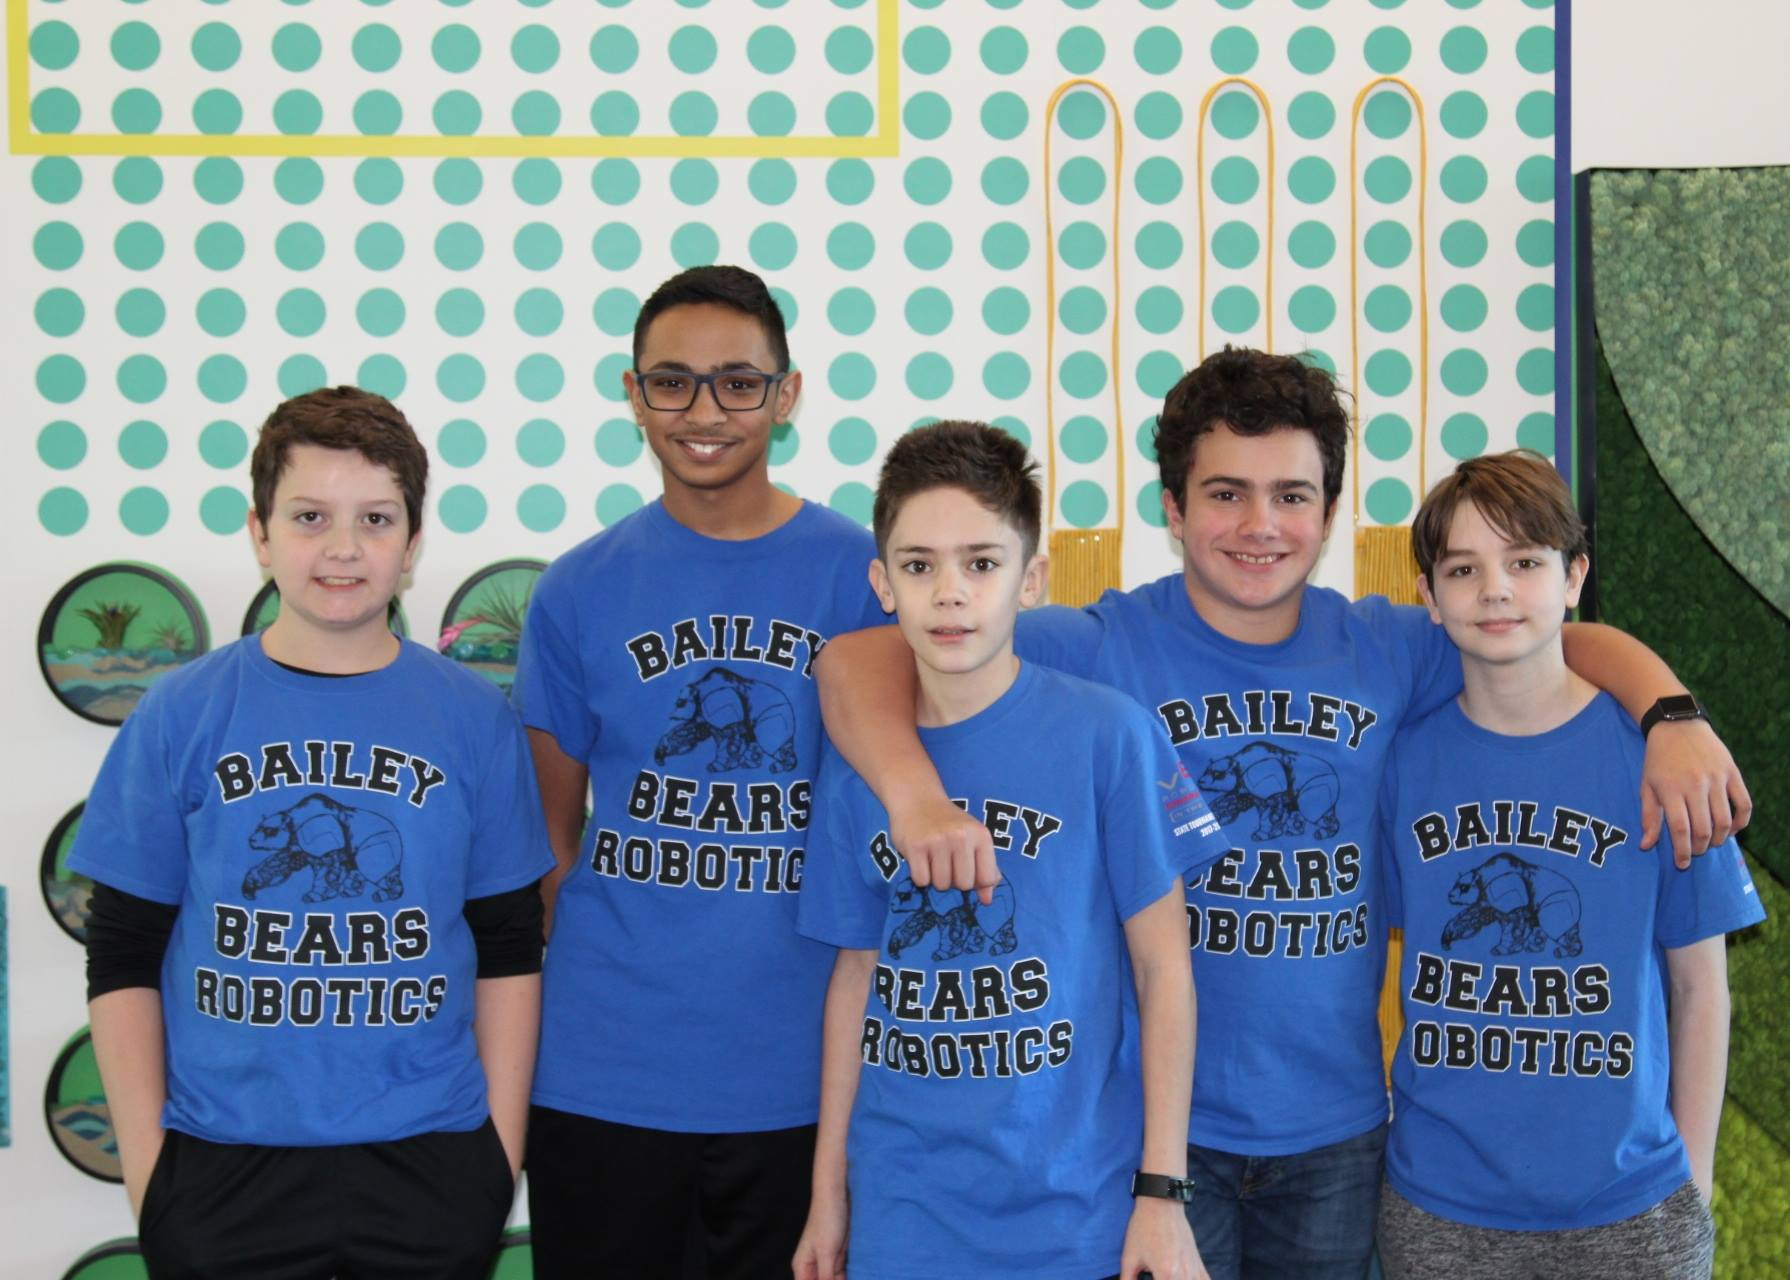 Bailey Robotics Needs Your Help!